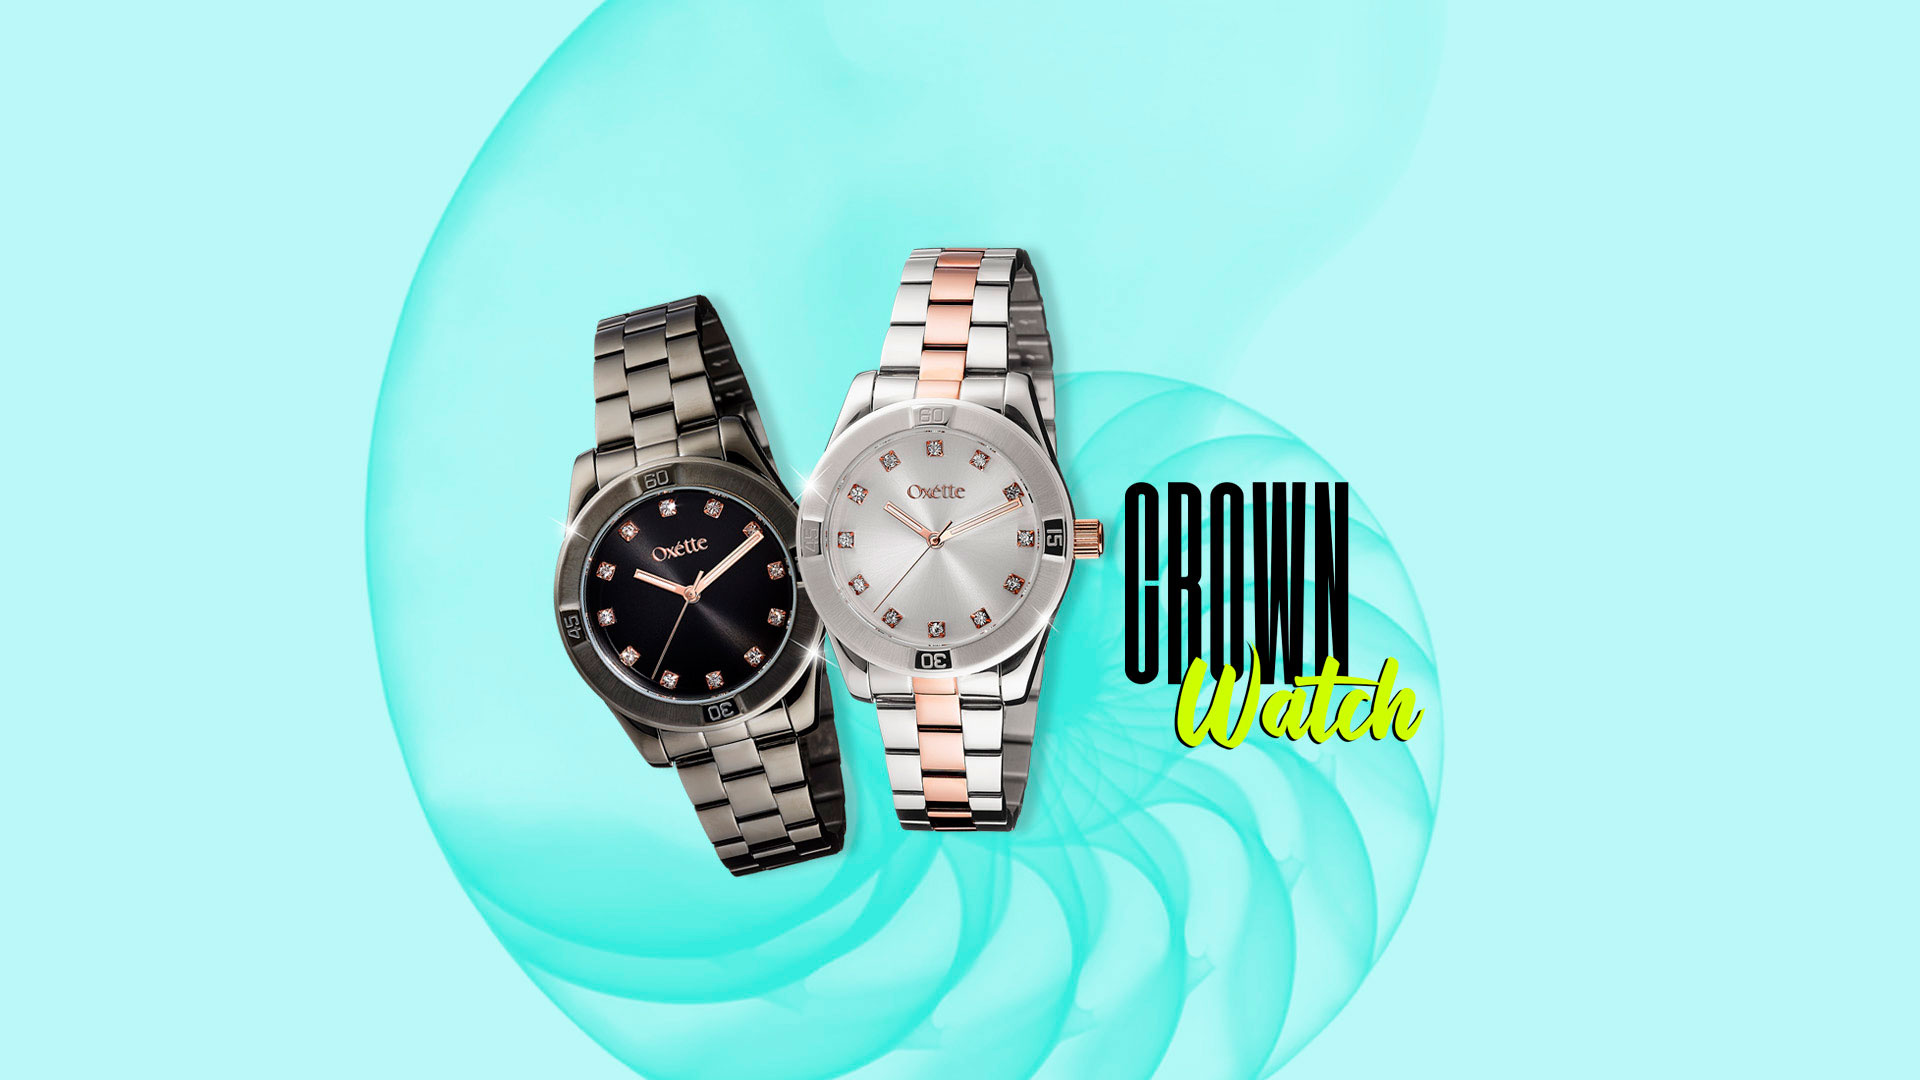 Crown Watch - Oxette